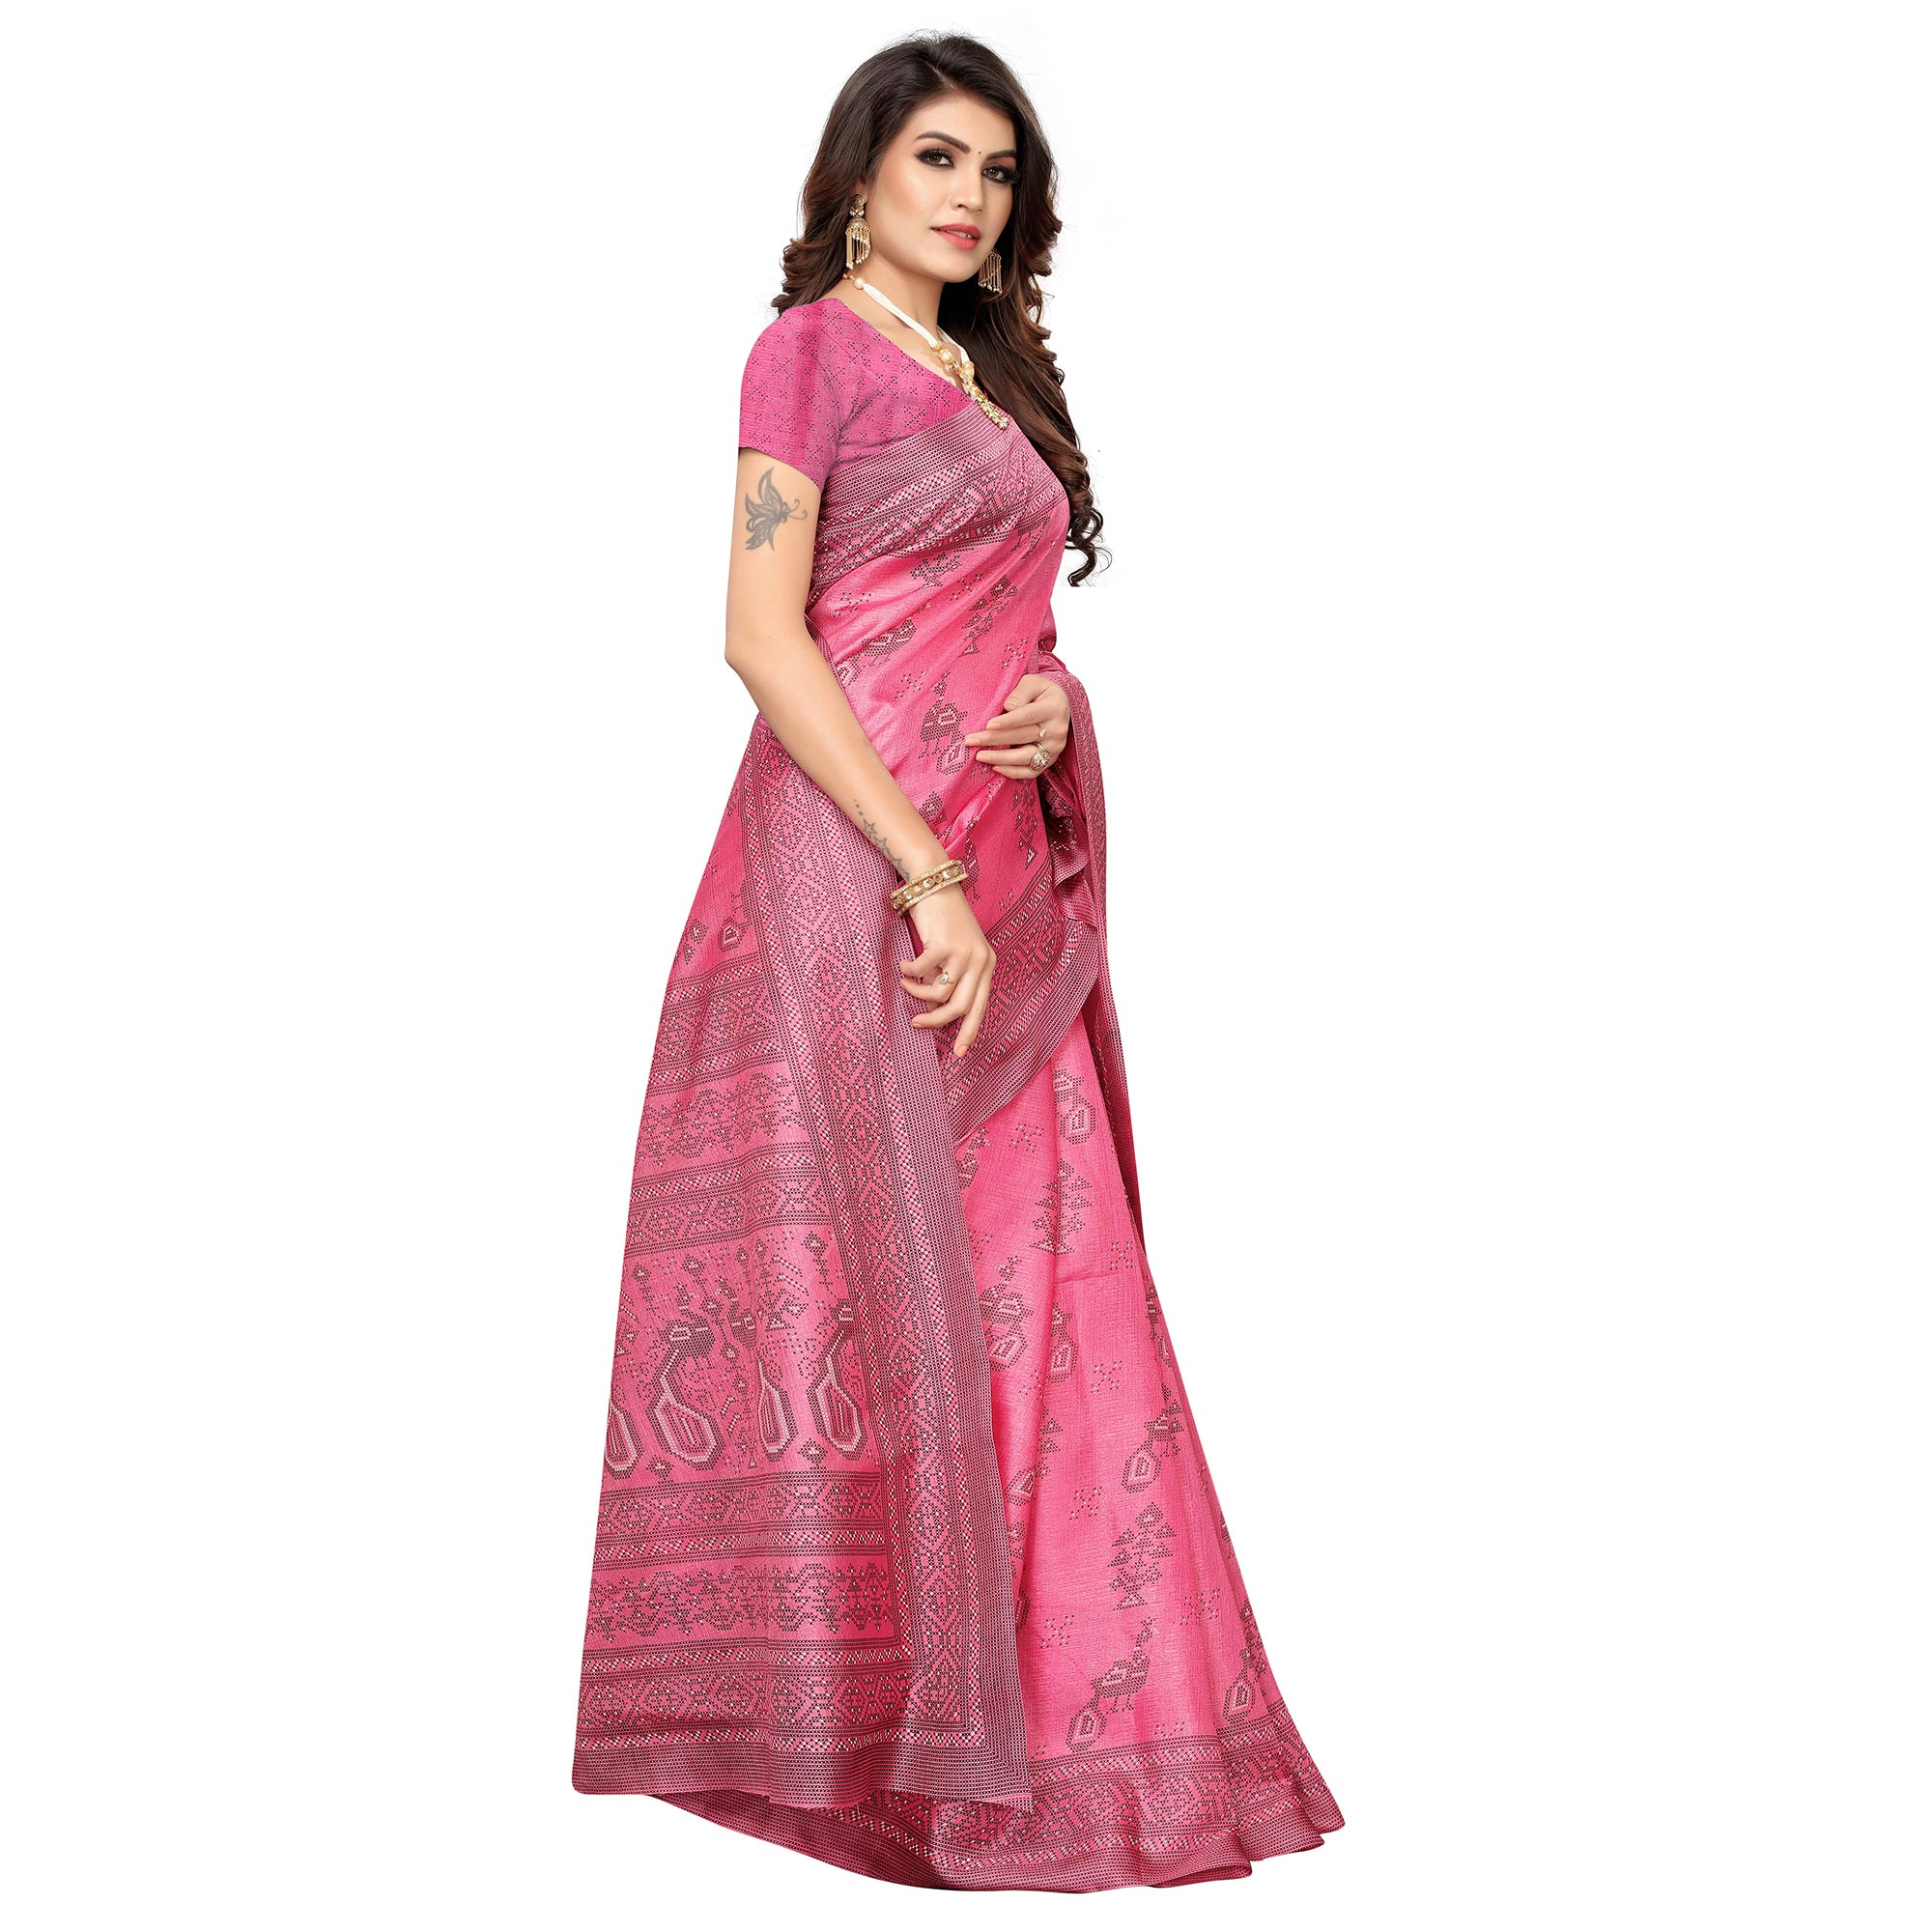 Gleaming Pink Colored Casual Peacock Printed Khadi Silk Saree